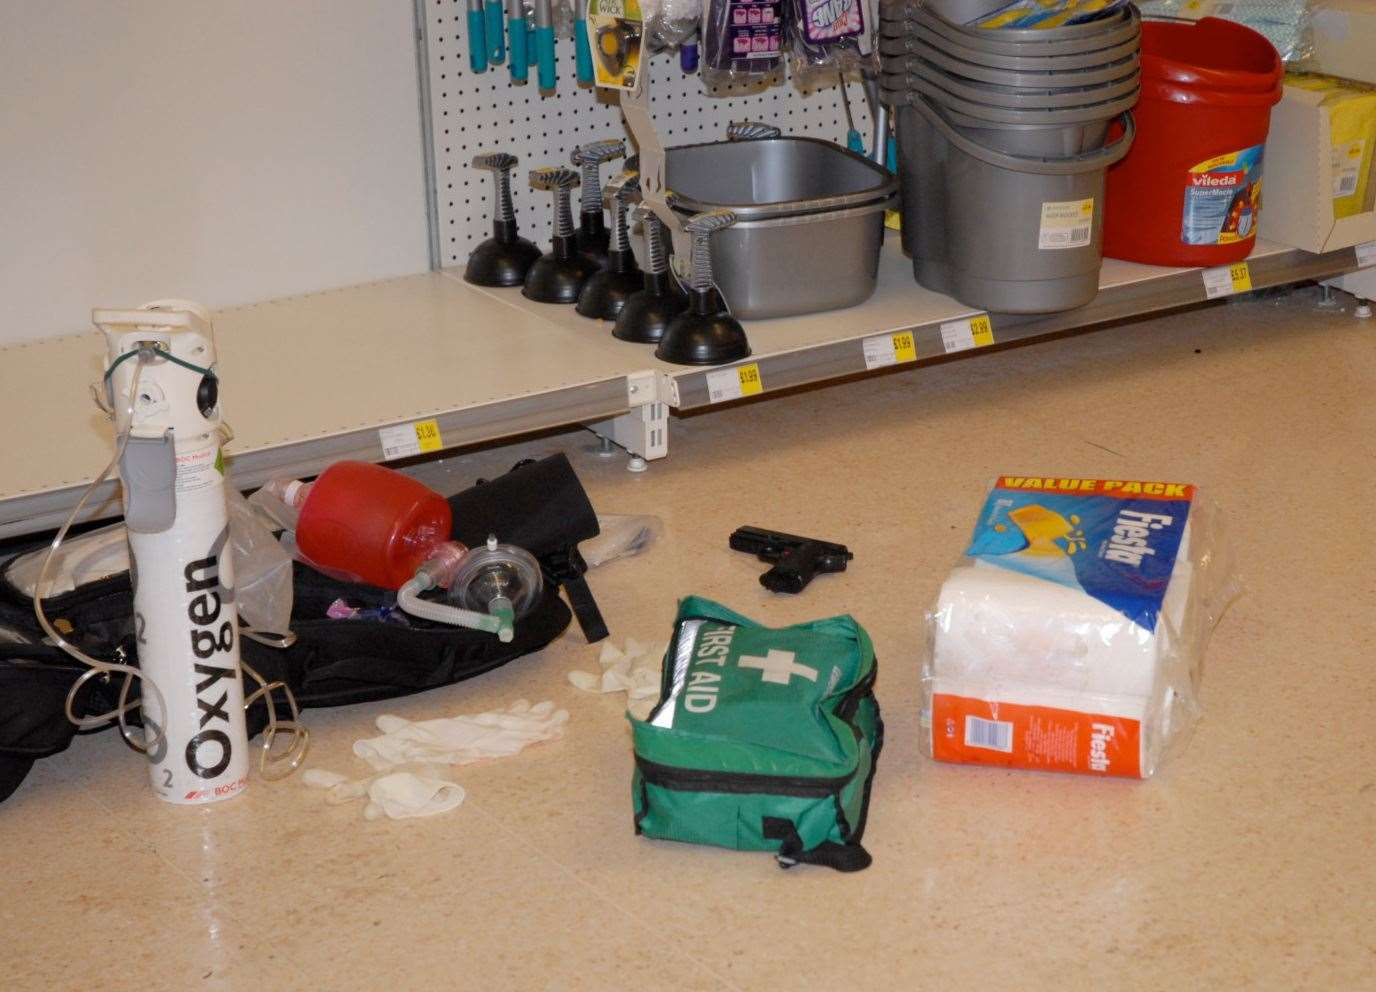 A picture of the scene at Morrison's after Tomas Uptas was shot in the kitchen aisle